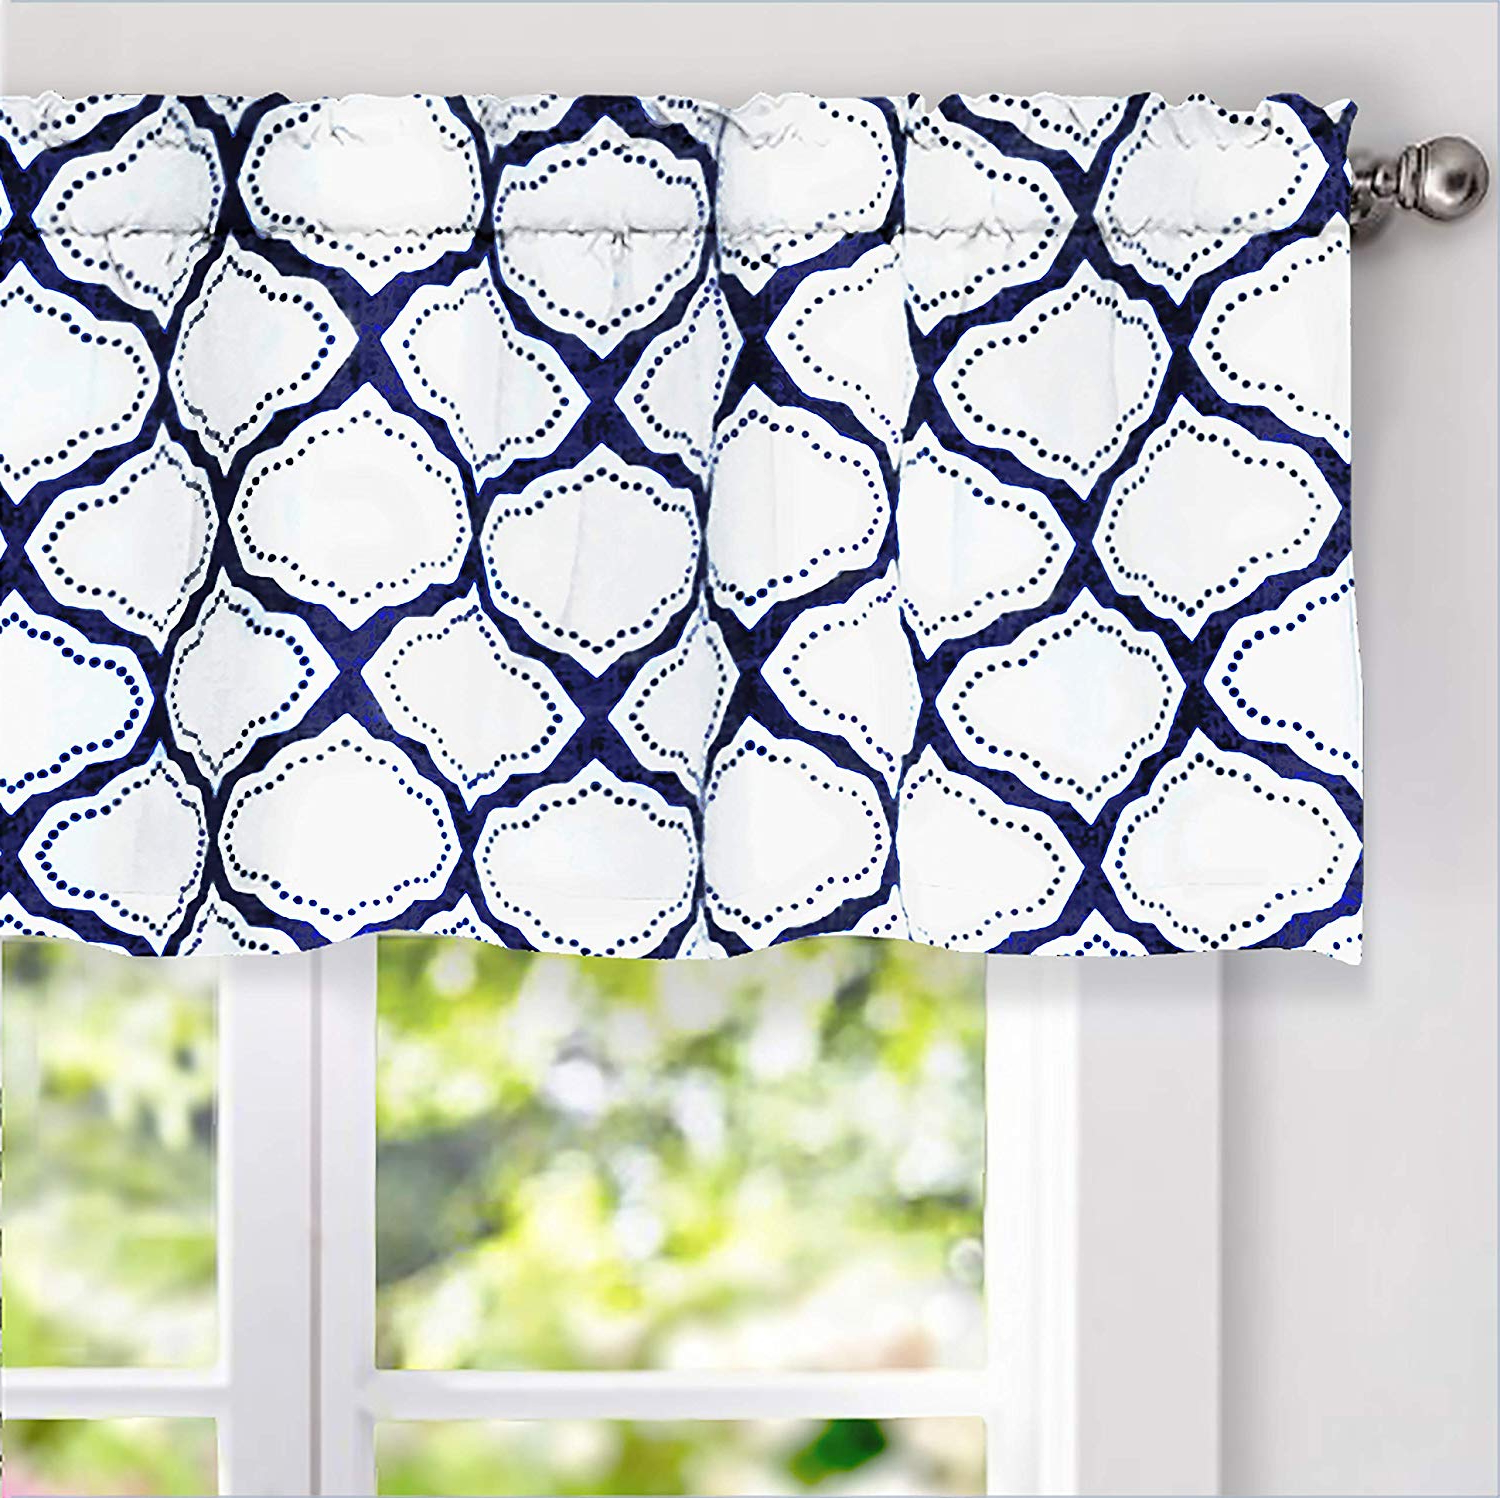 Popular Trellis Pattern Window Valances Throughout Driftaway Geo Trellis Room Darkening Window Curtain Valance Rod Pocket 52 Inch18 Inch Navy (View 13 of 20)